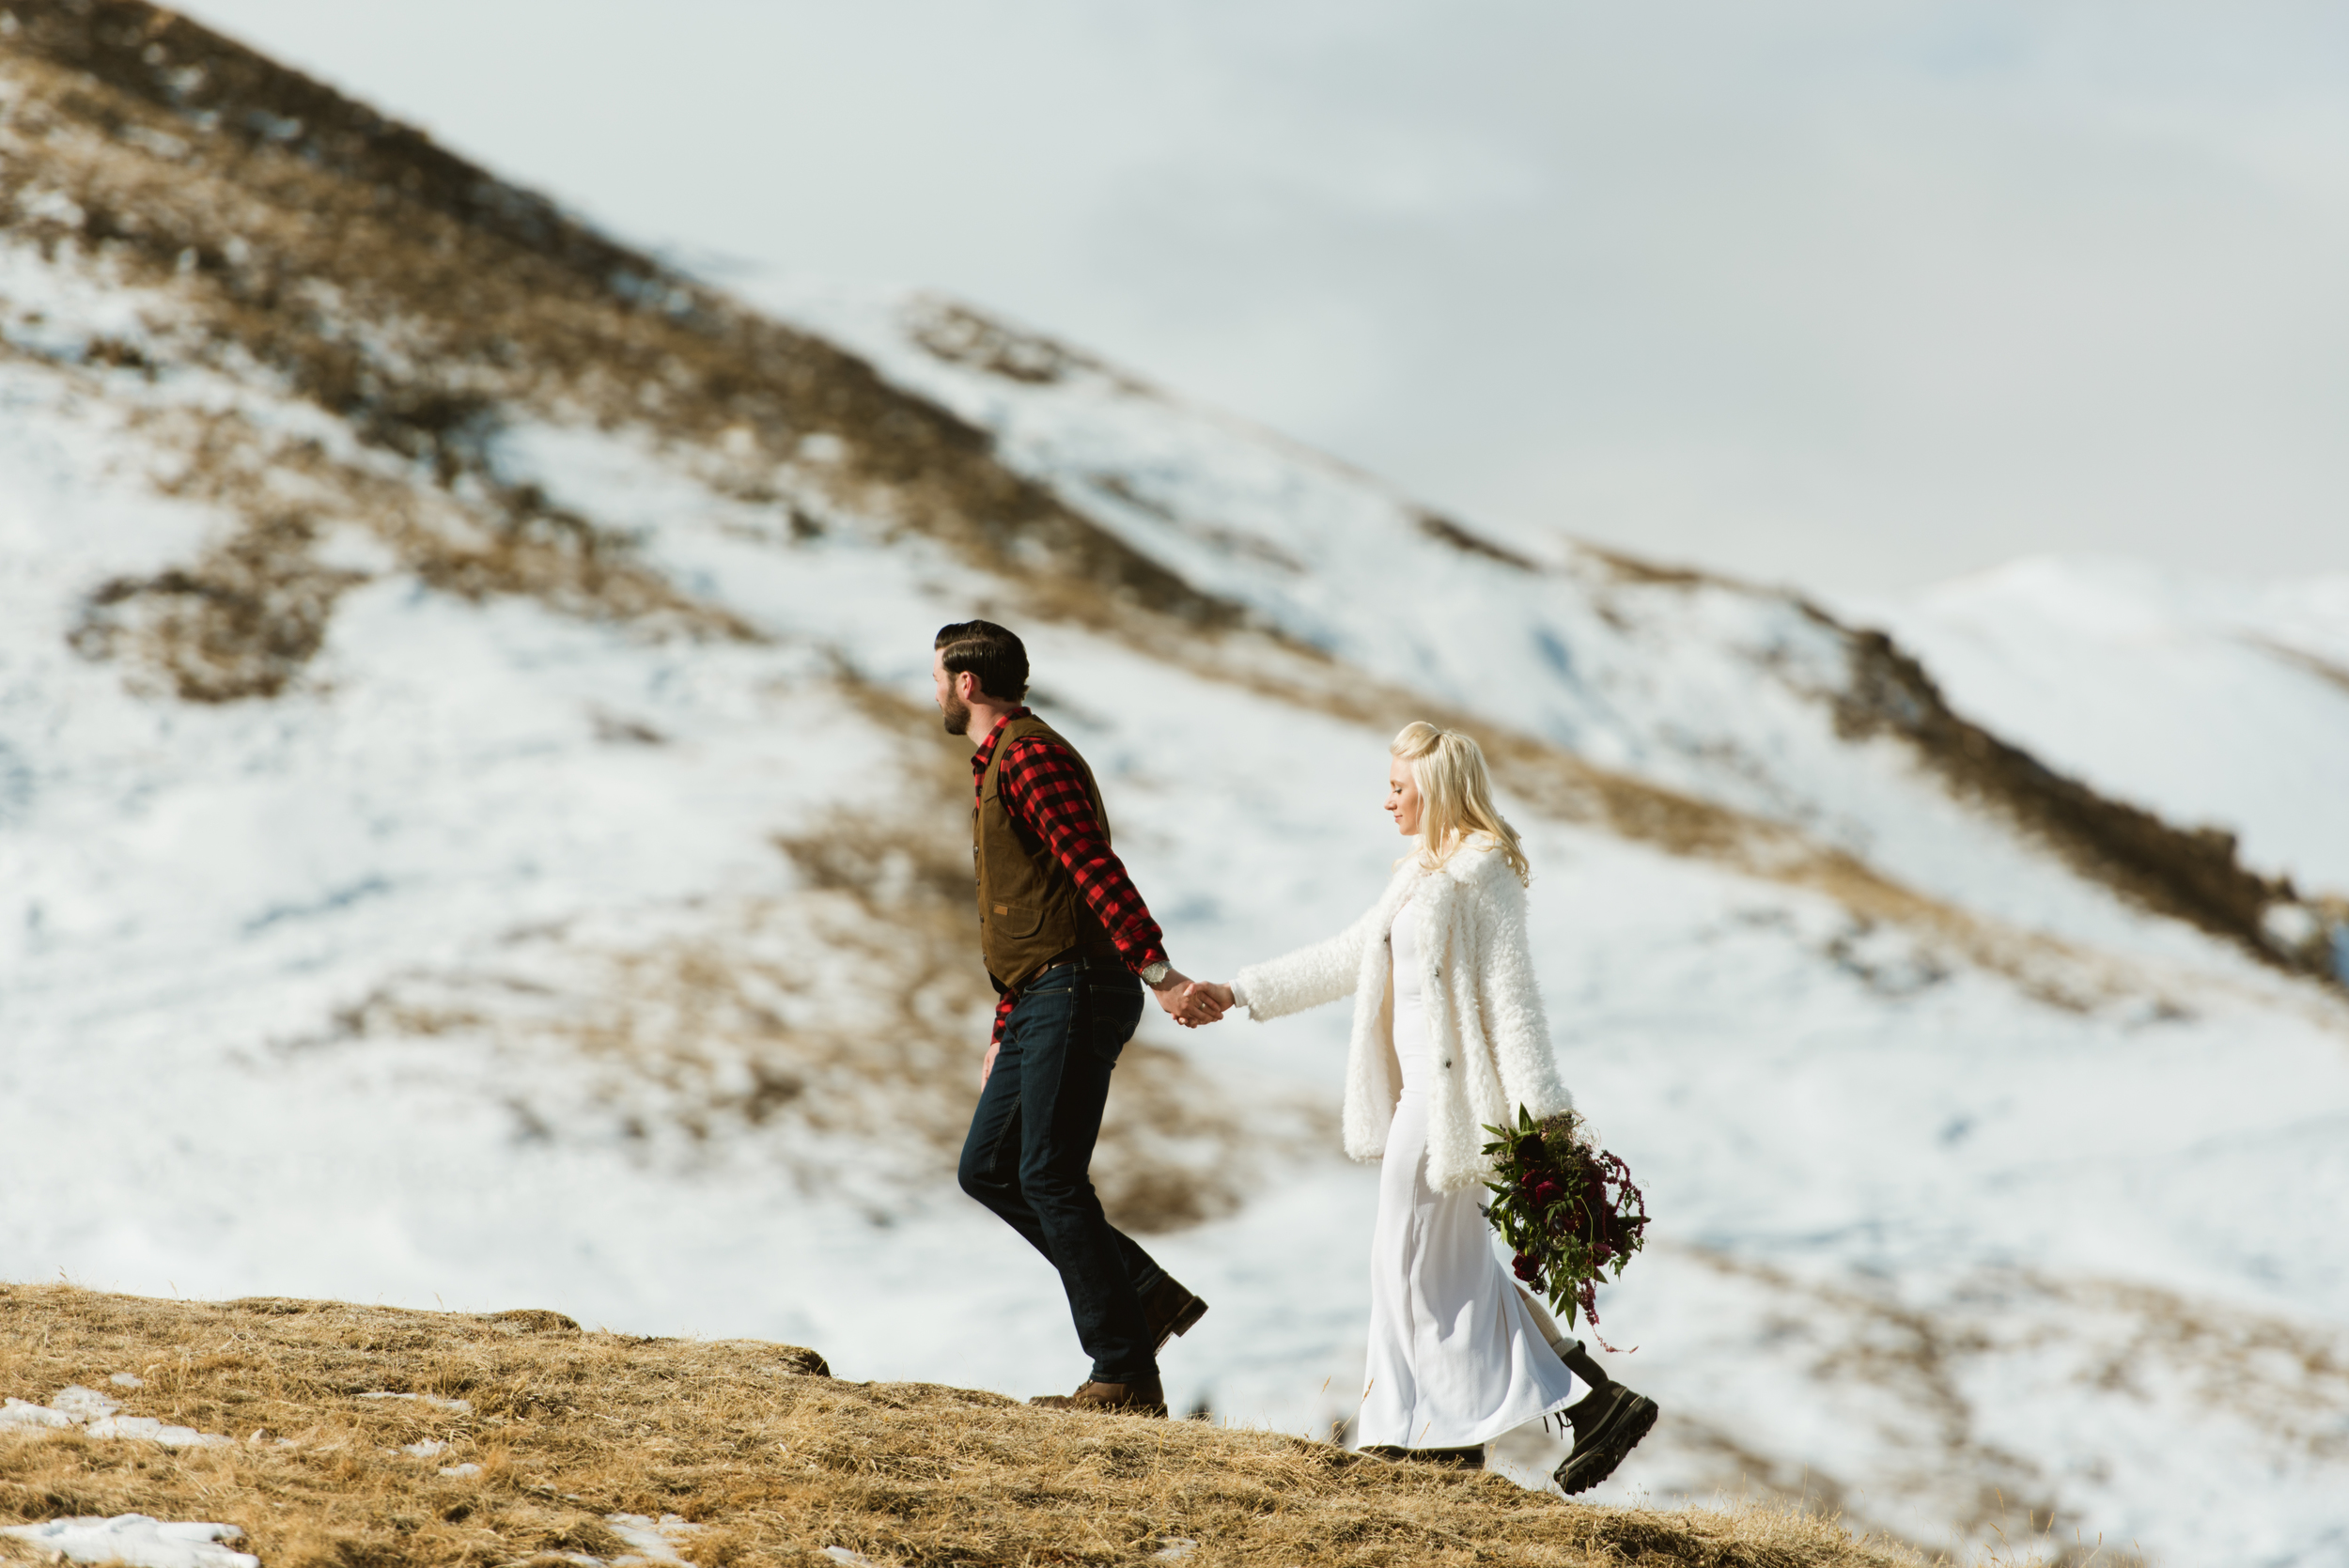 This adventurous couple hiked around A-Basin in Keystone, Colorado where they eloped surrounded by the snowcapped Rocky Mountains!| Adventurous wedding photos by Maddie Mae